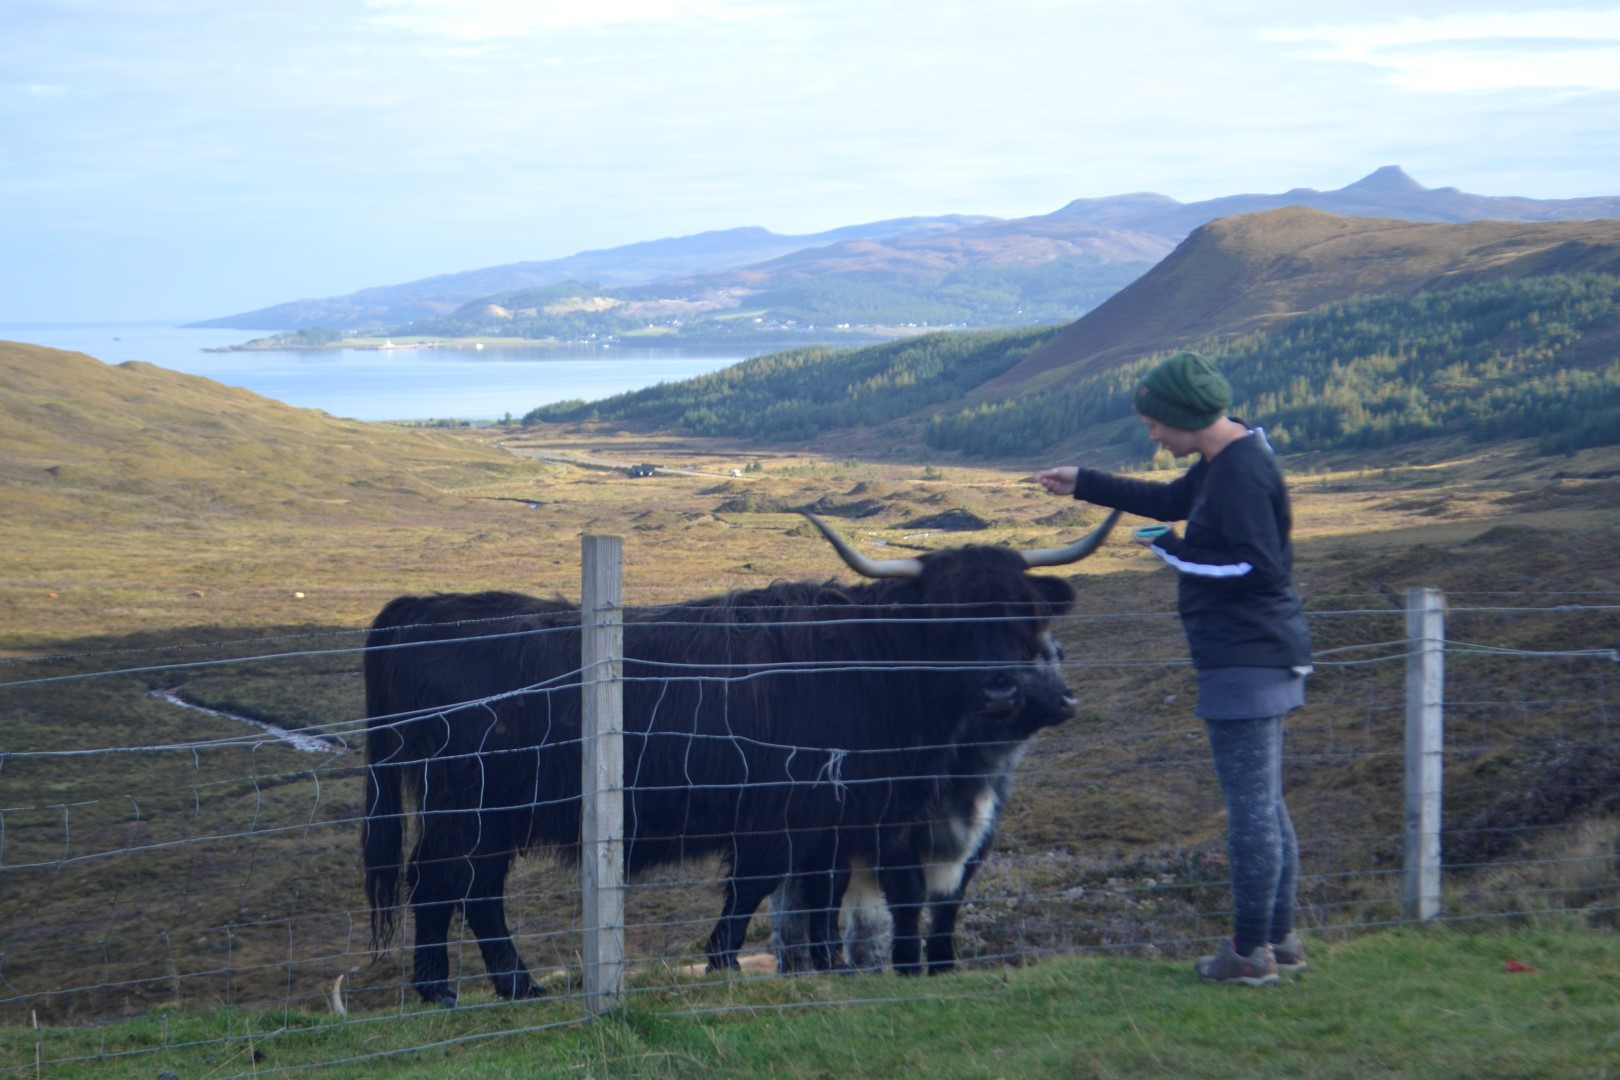 Me, about to get gently whacked by this cow's horns... photo, Andy Bruner